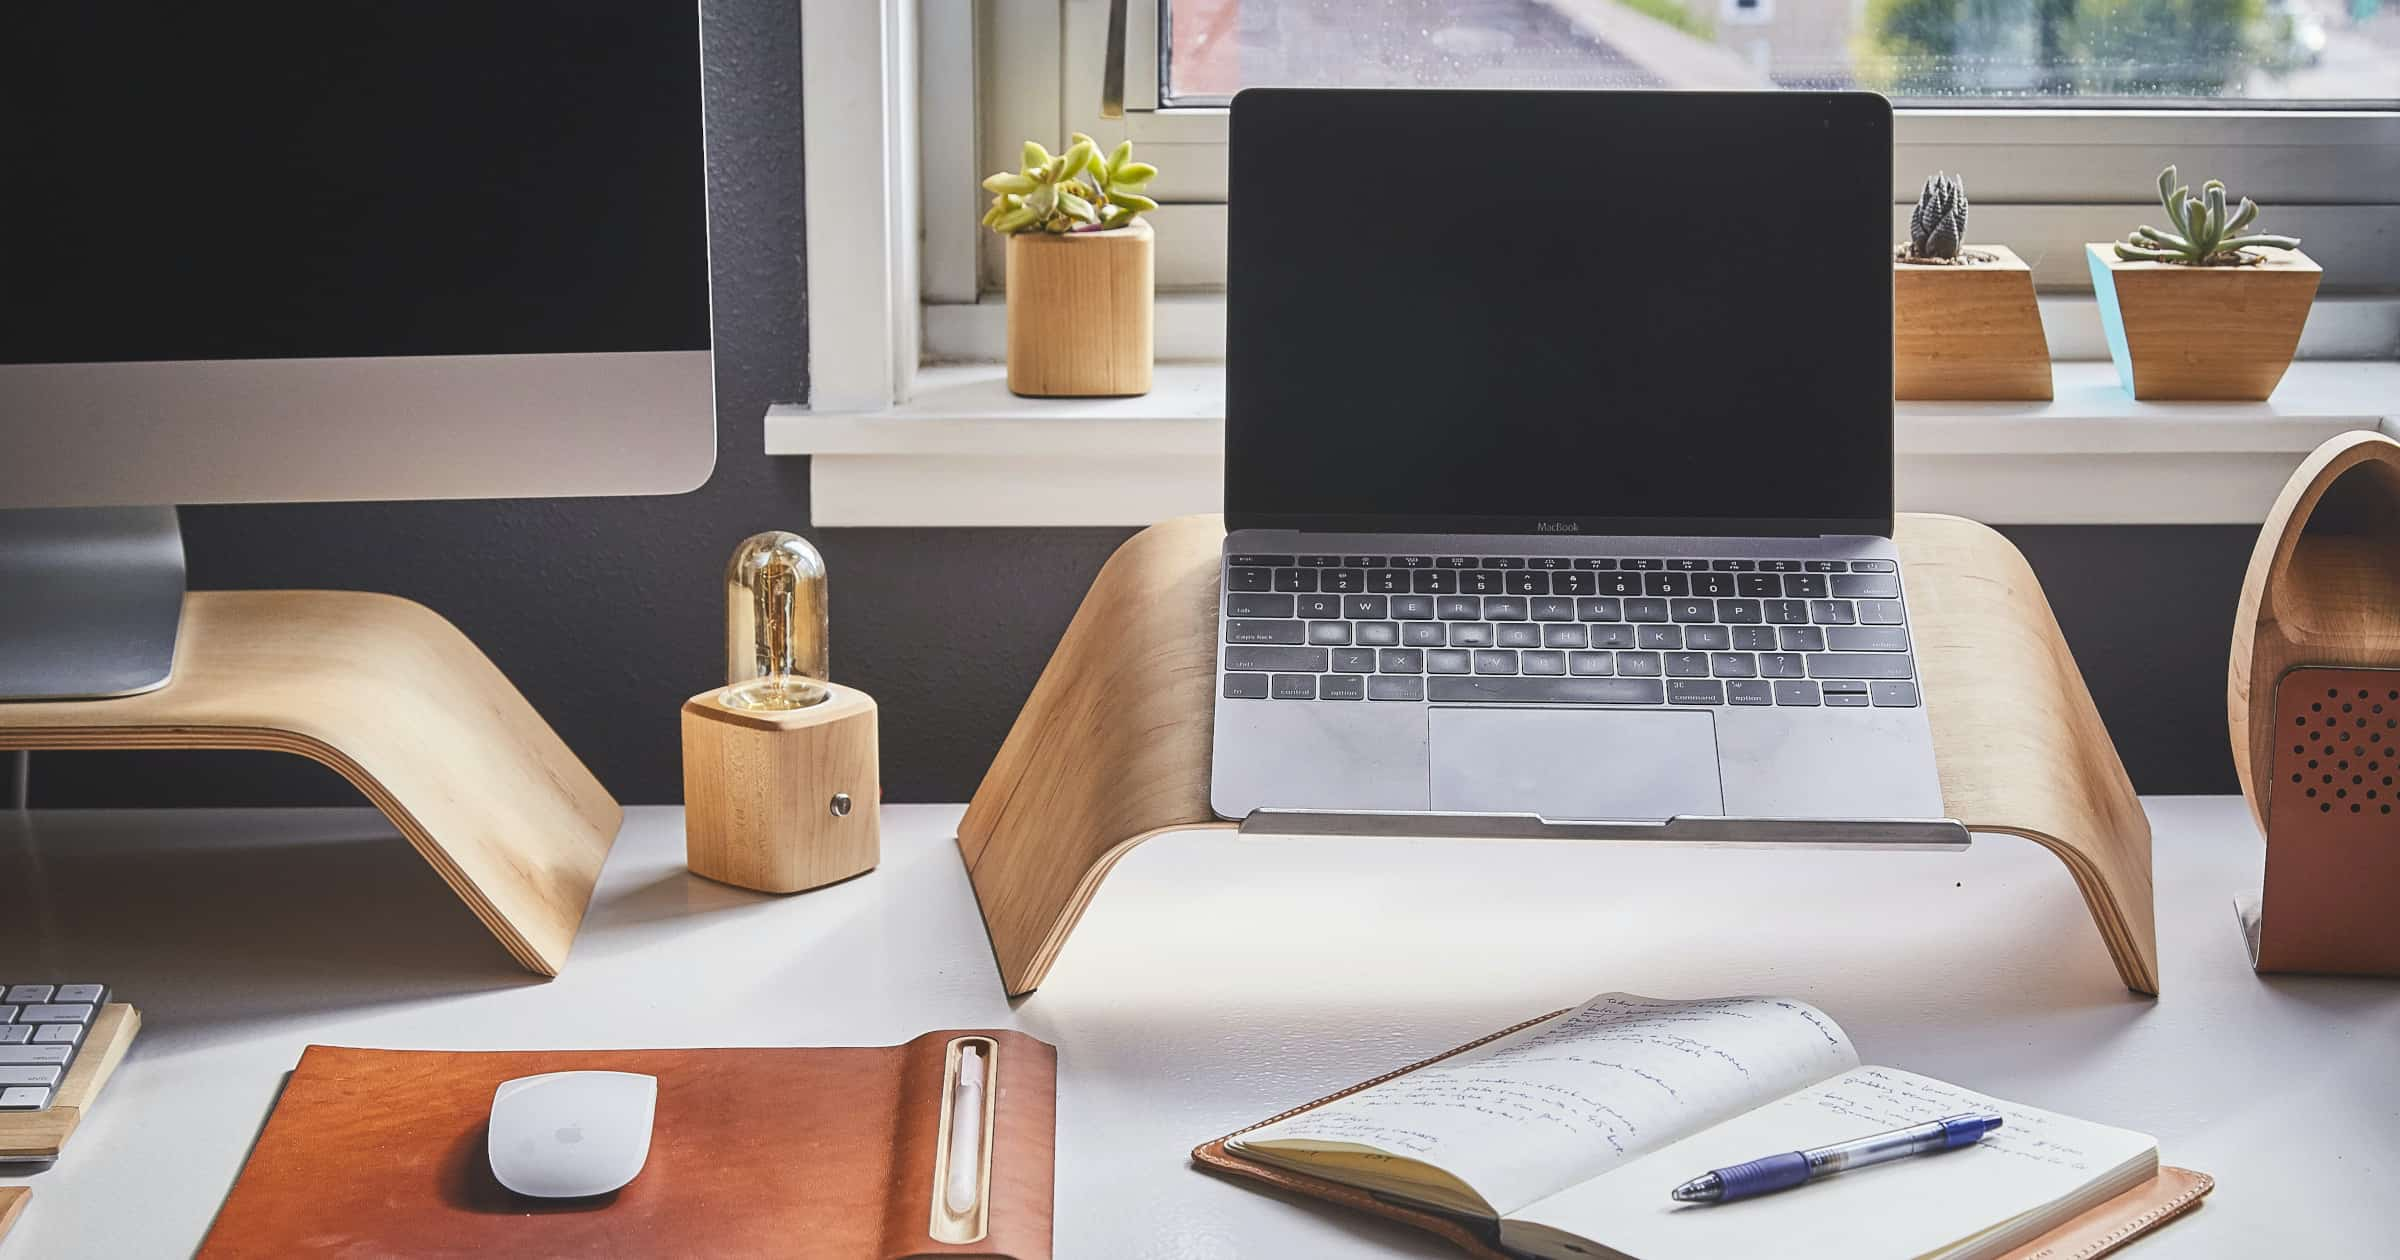 What Is a Remote Work Stipend and Why Do You Need One?